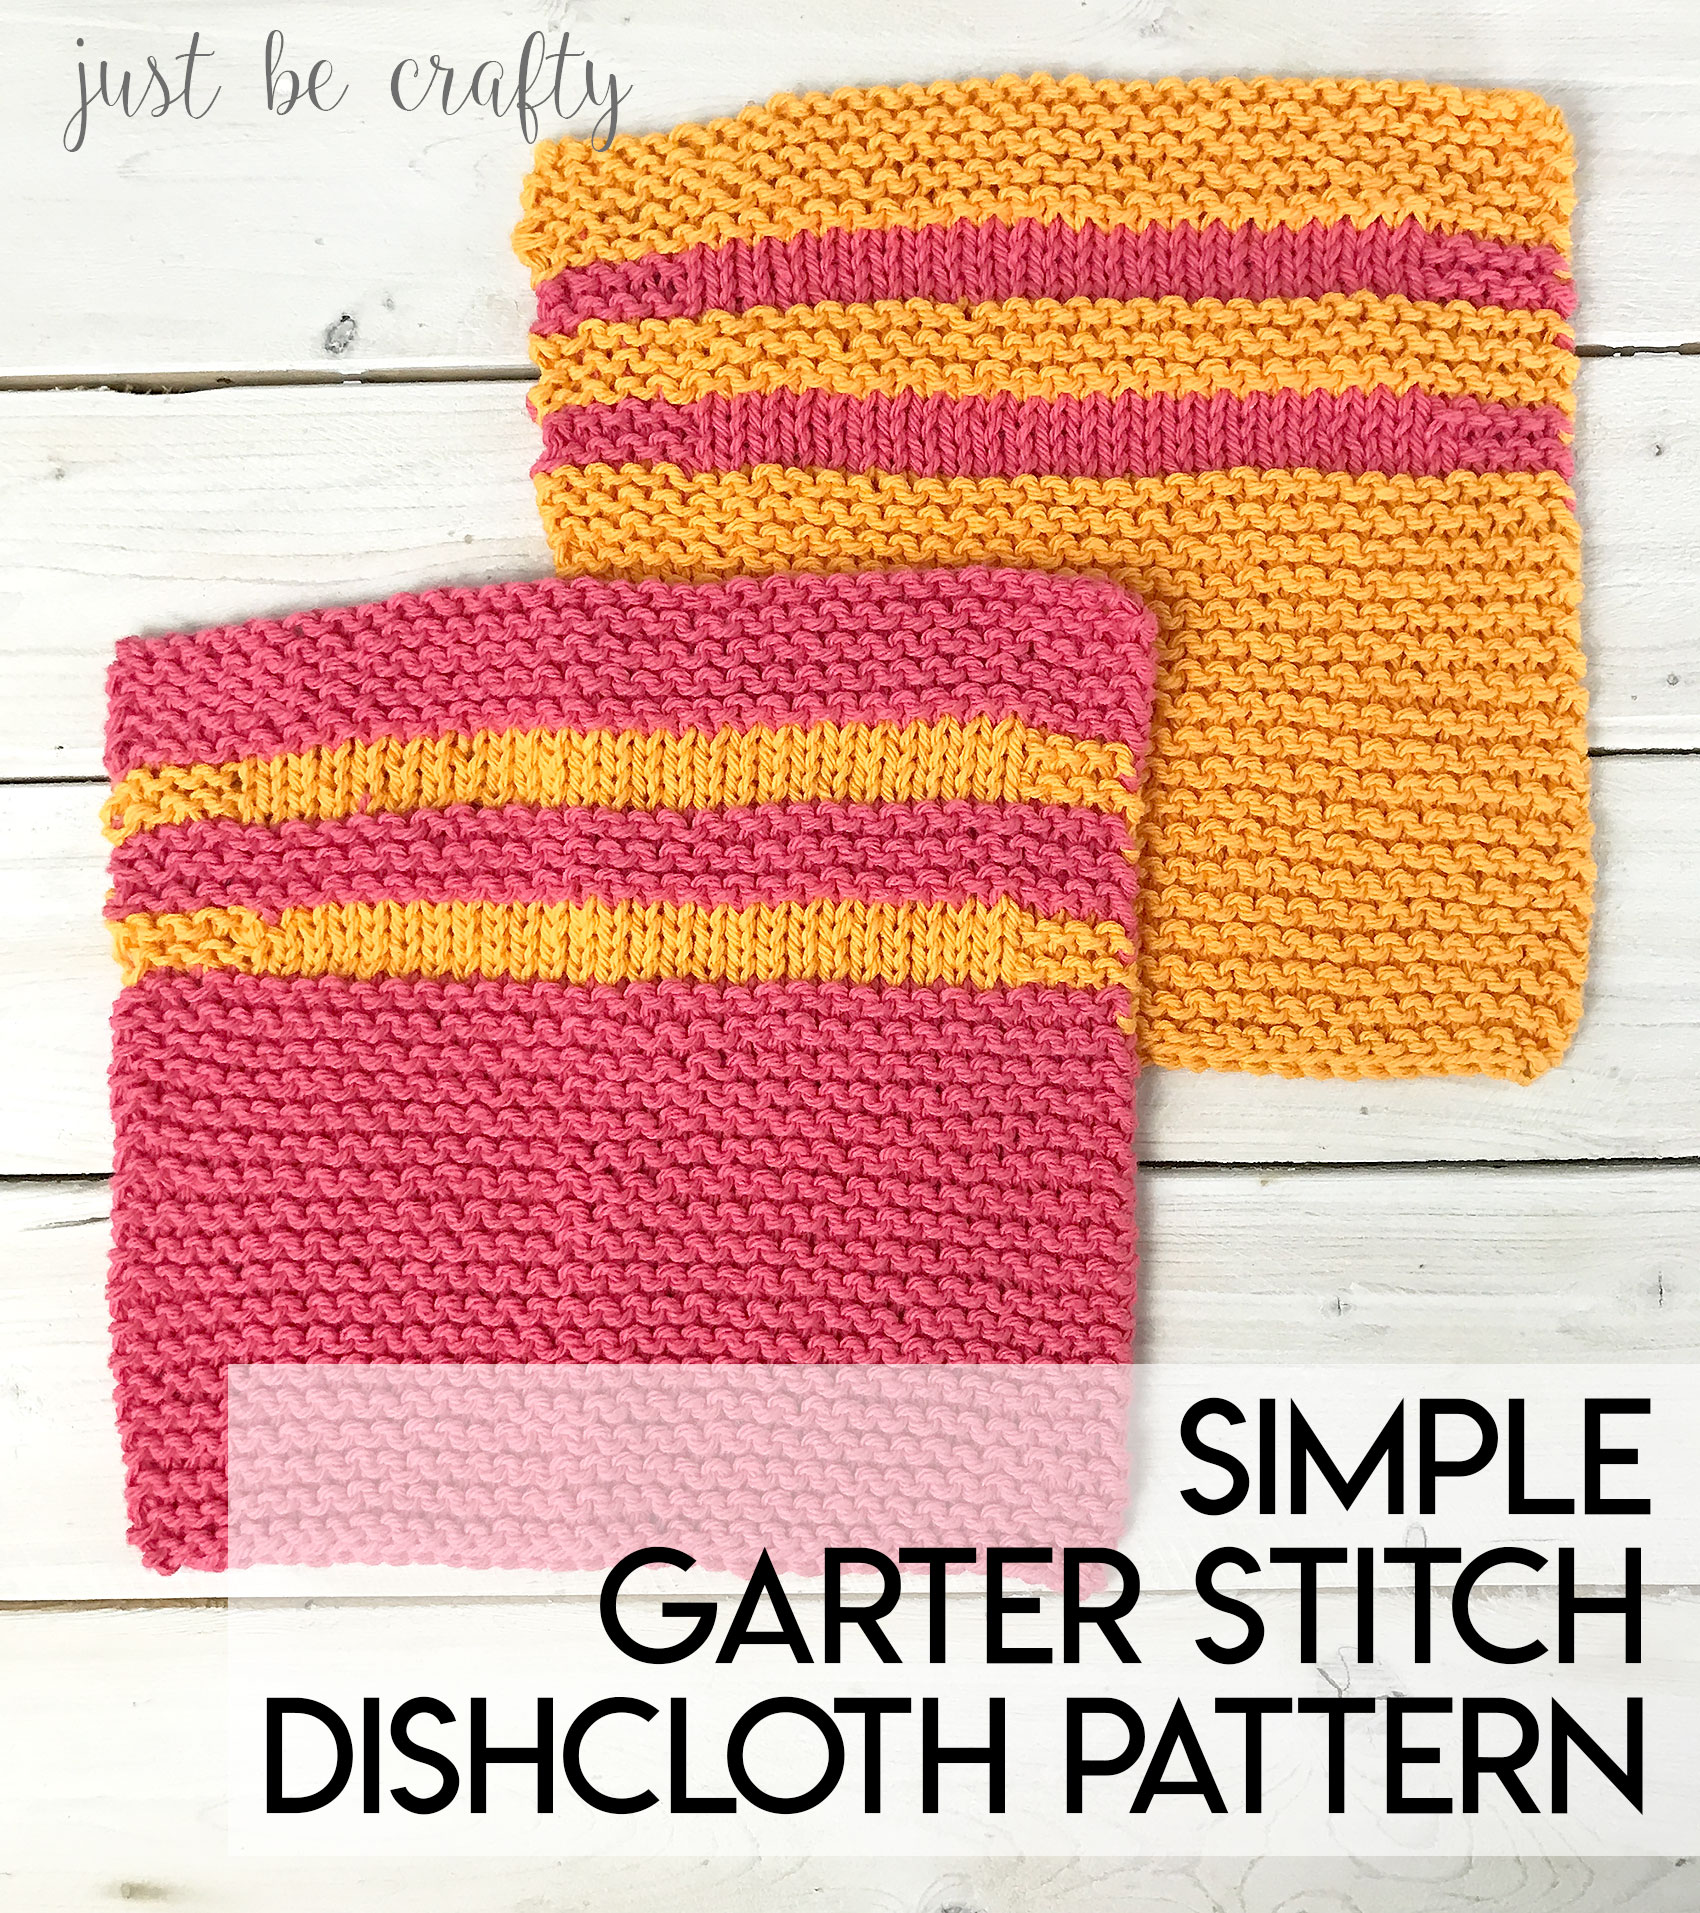 Simple Garter Stitch Dishcloth Pattern